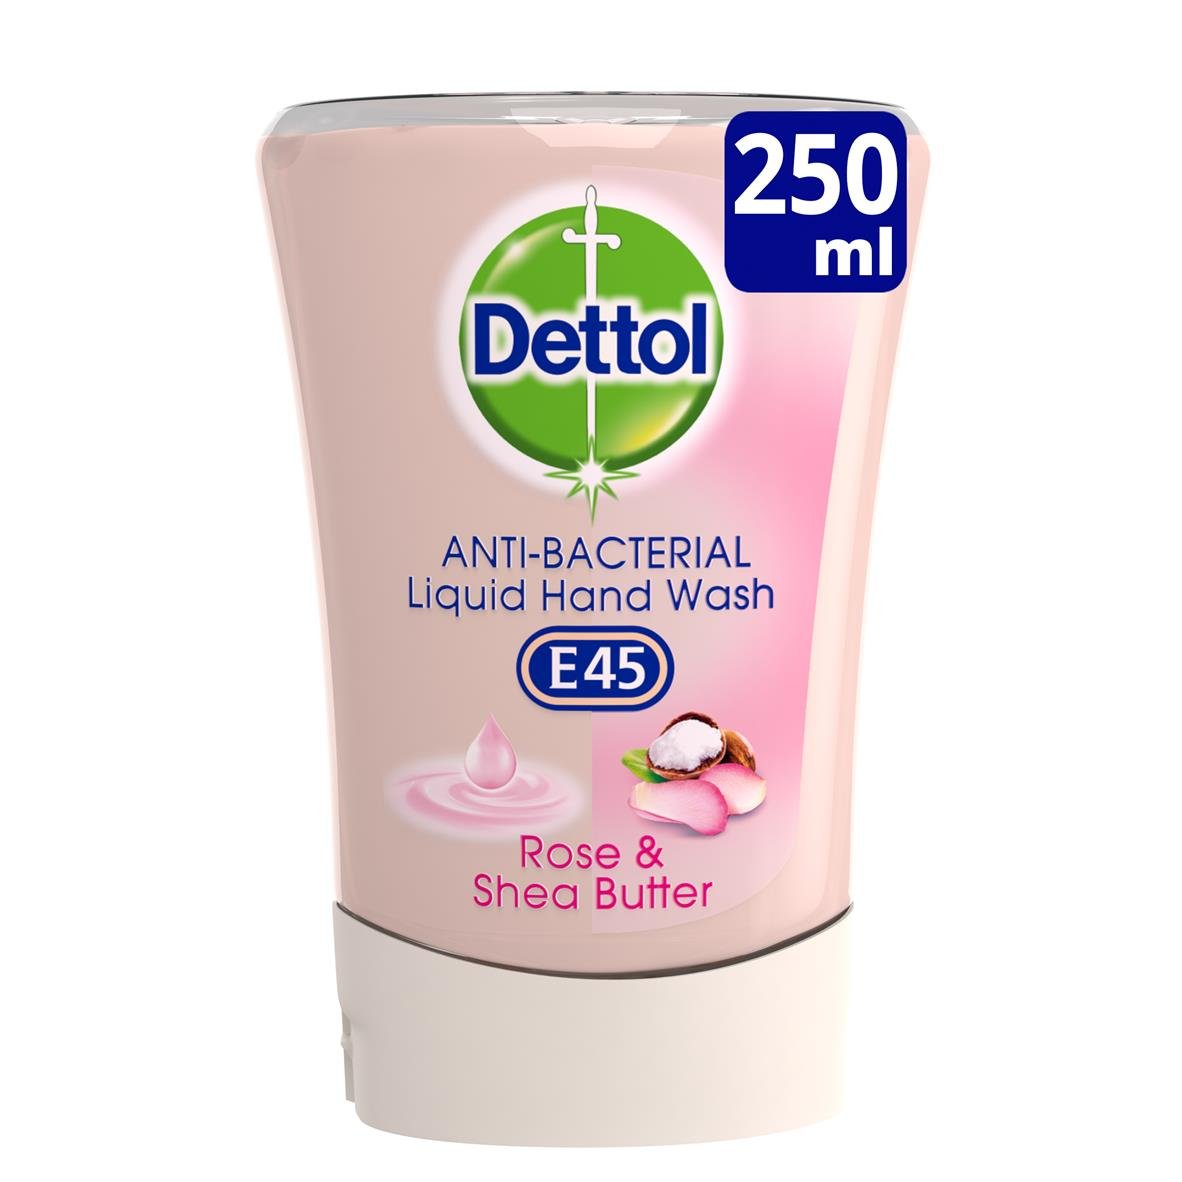 Dettol No-Touch E45 Refill Hand Wash, Rose and Shea Butter, 250 ml, Pack of 5